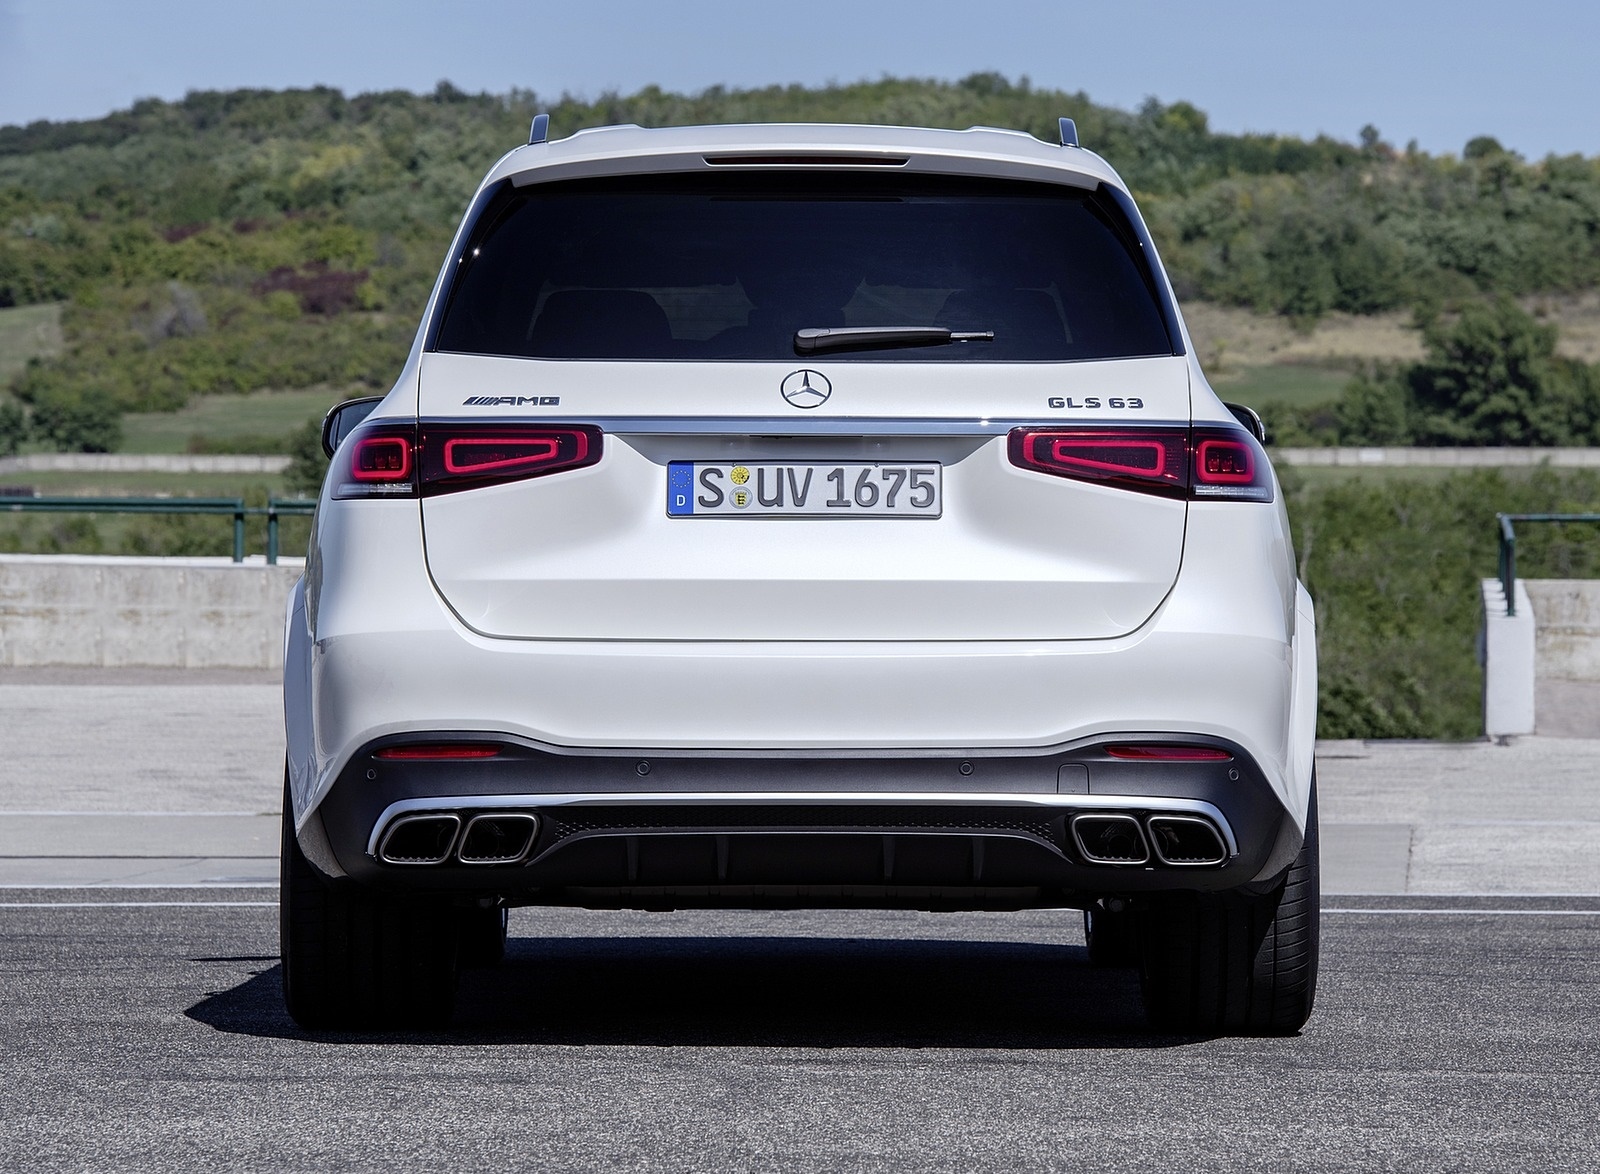 2021 Mercedes-AMG GLS 63 Rear Wallpapers (7)